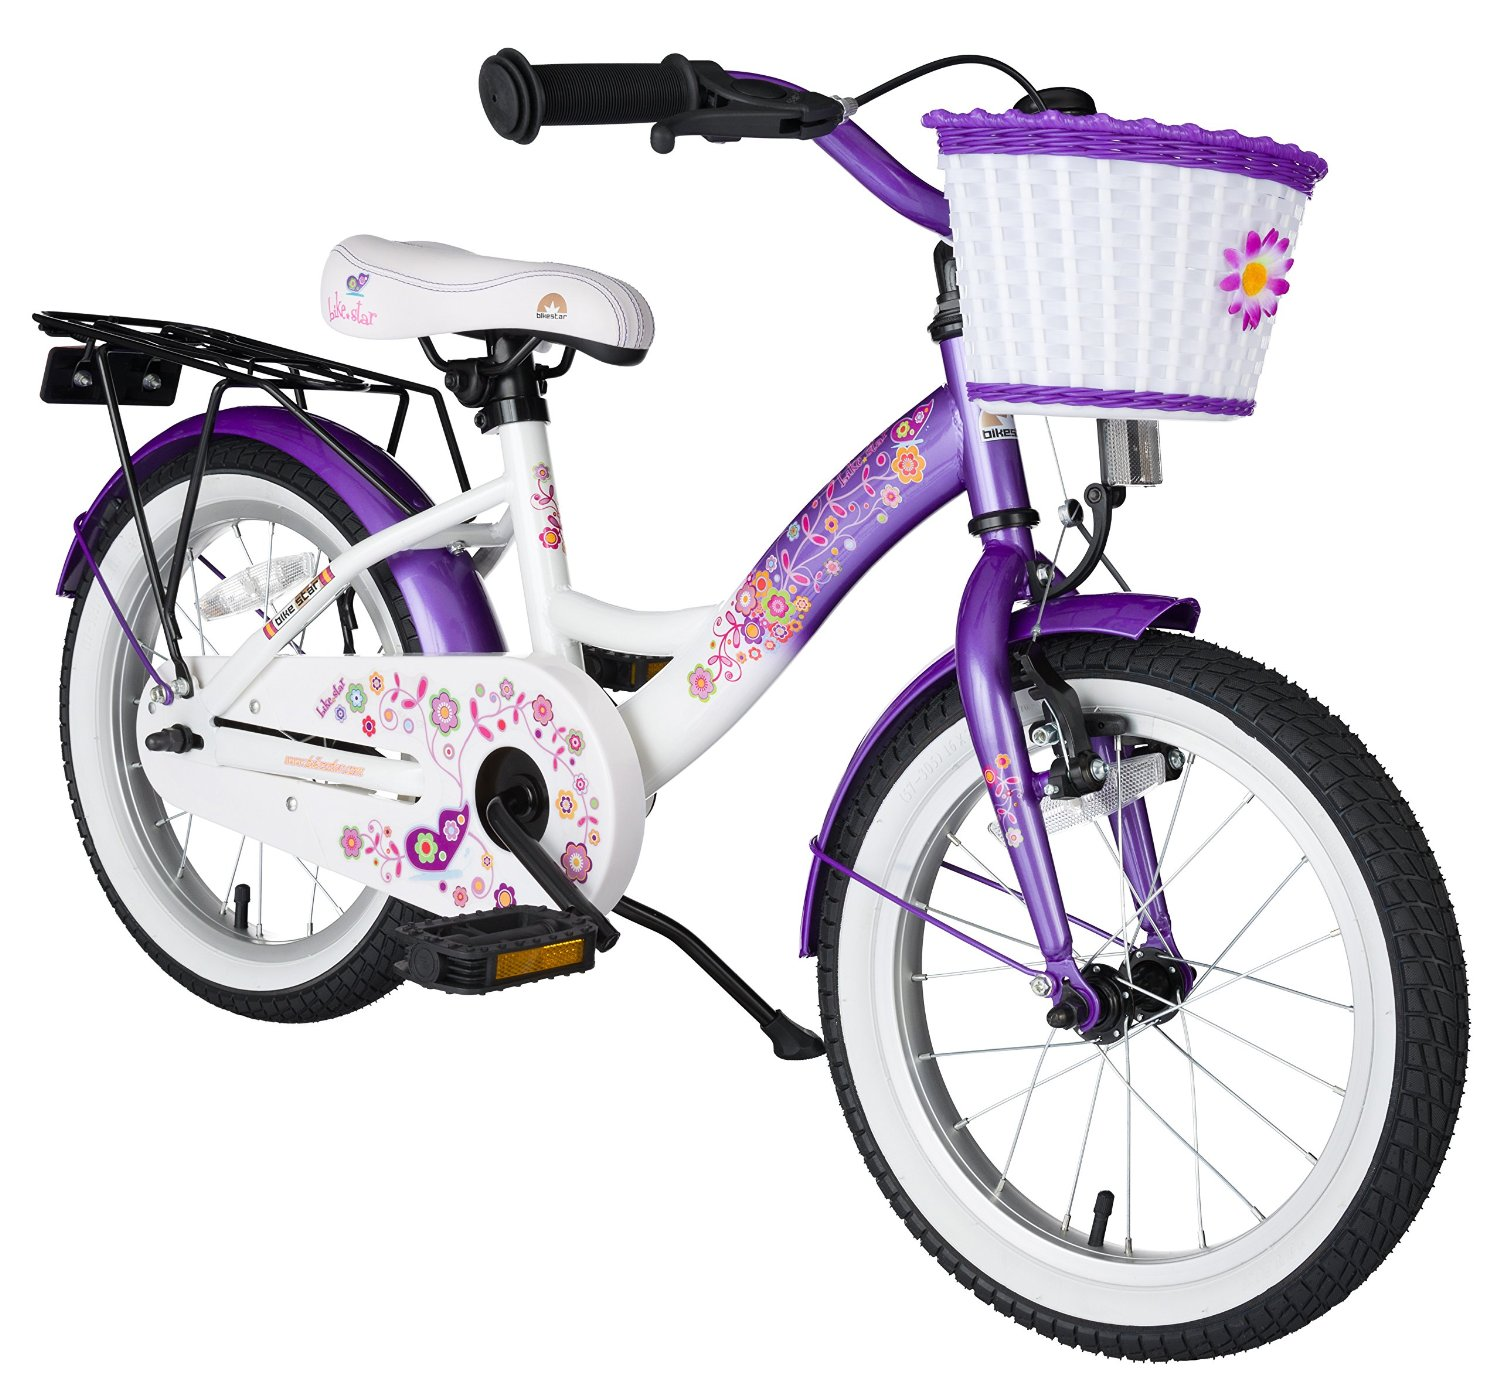 Bike star 40.6cm (16 Inch) Kids Bike Classic